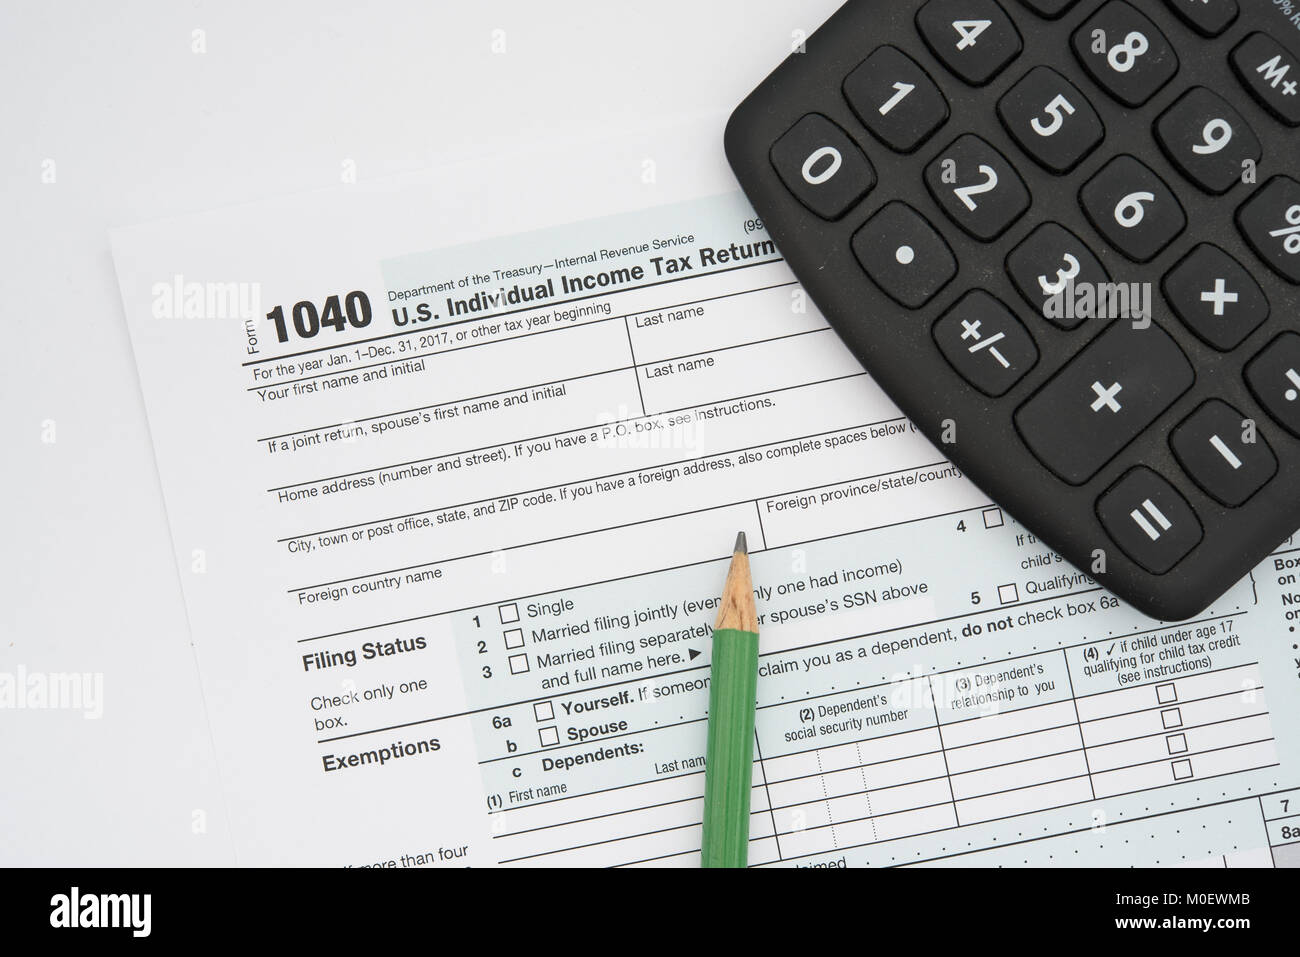 US Federal income tax form 1040 for individuals, with a pencil and a calculator. - Stock Image